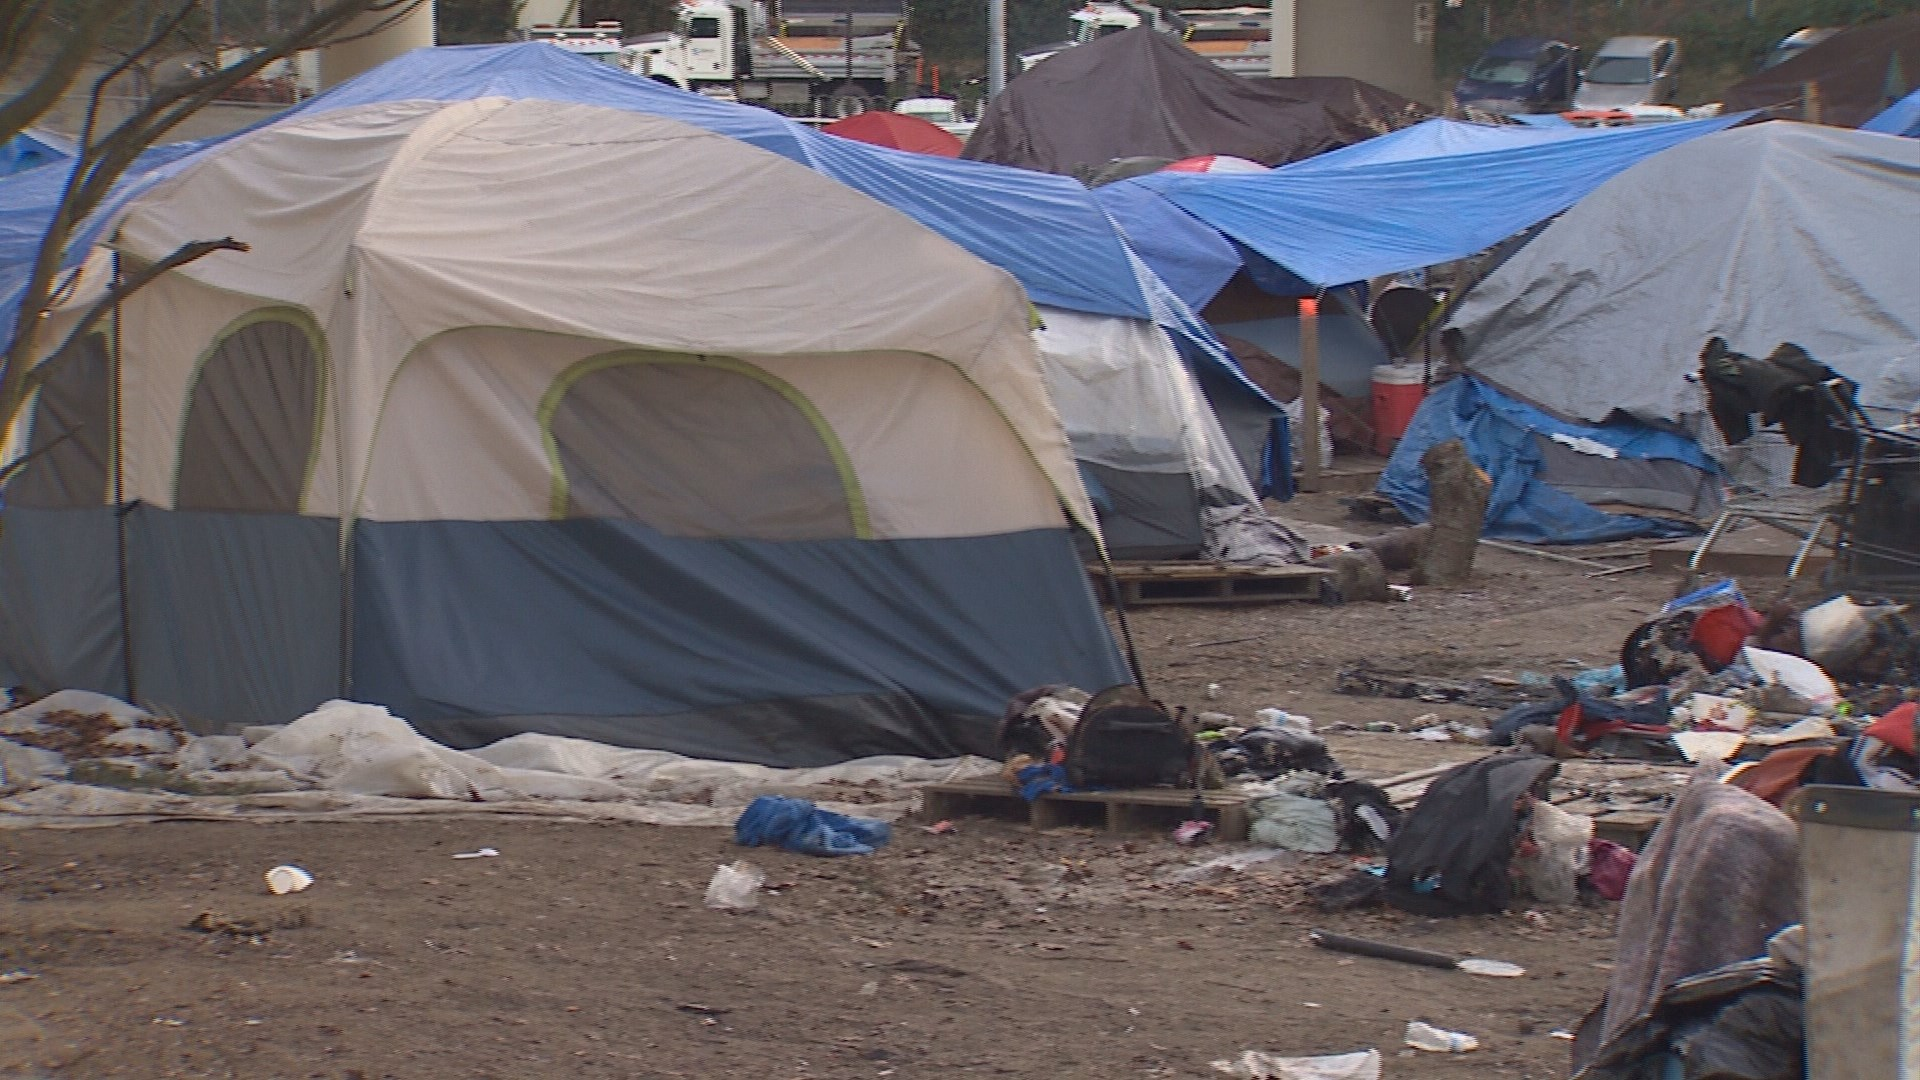 Nearly 12,000 people homeless in King County, new report ...